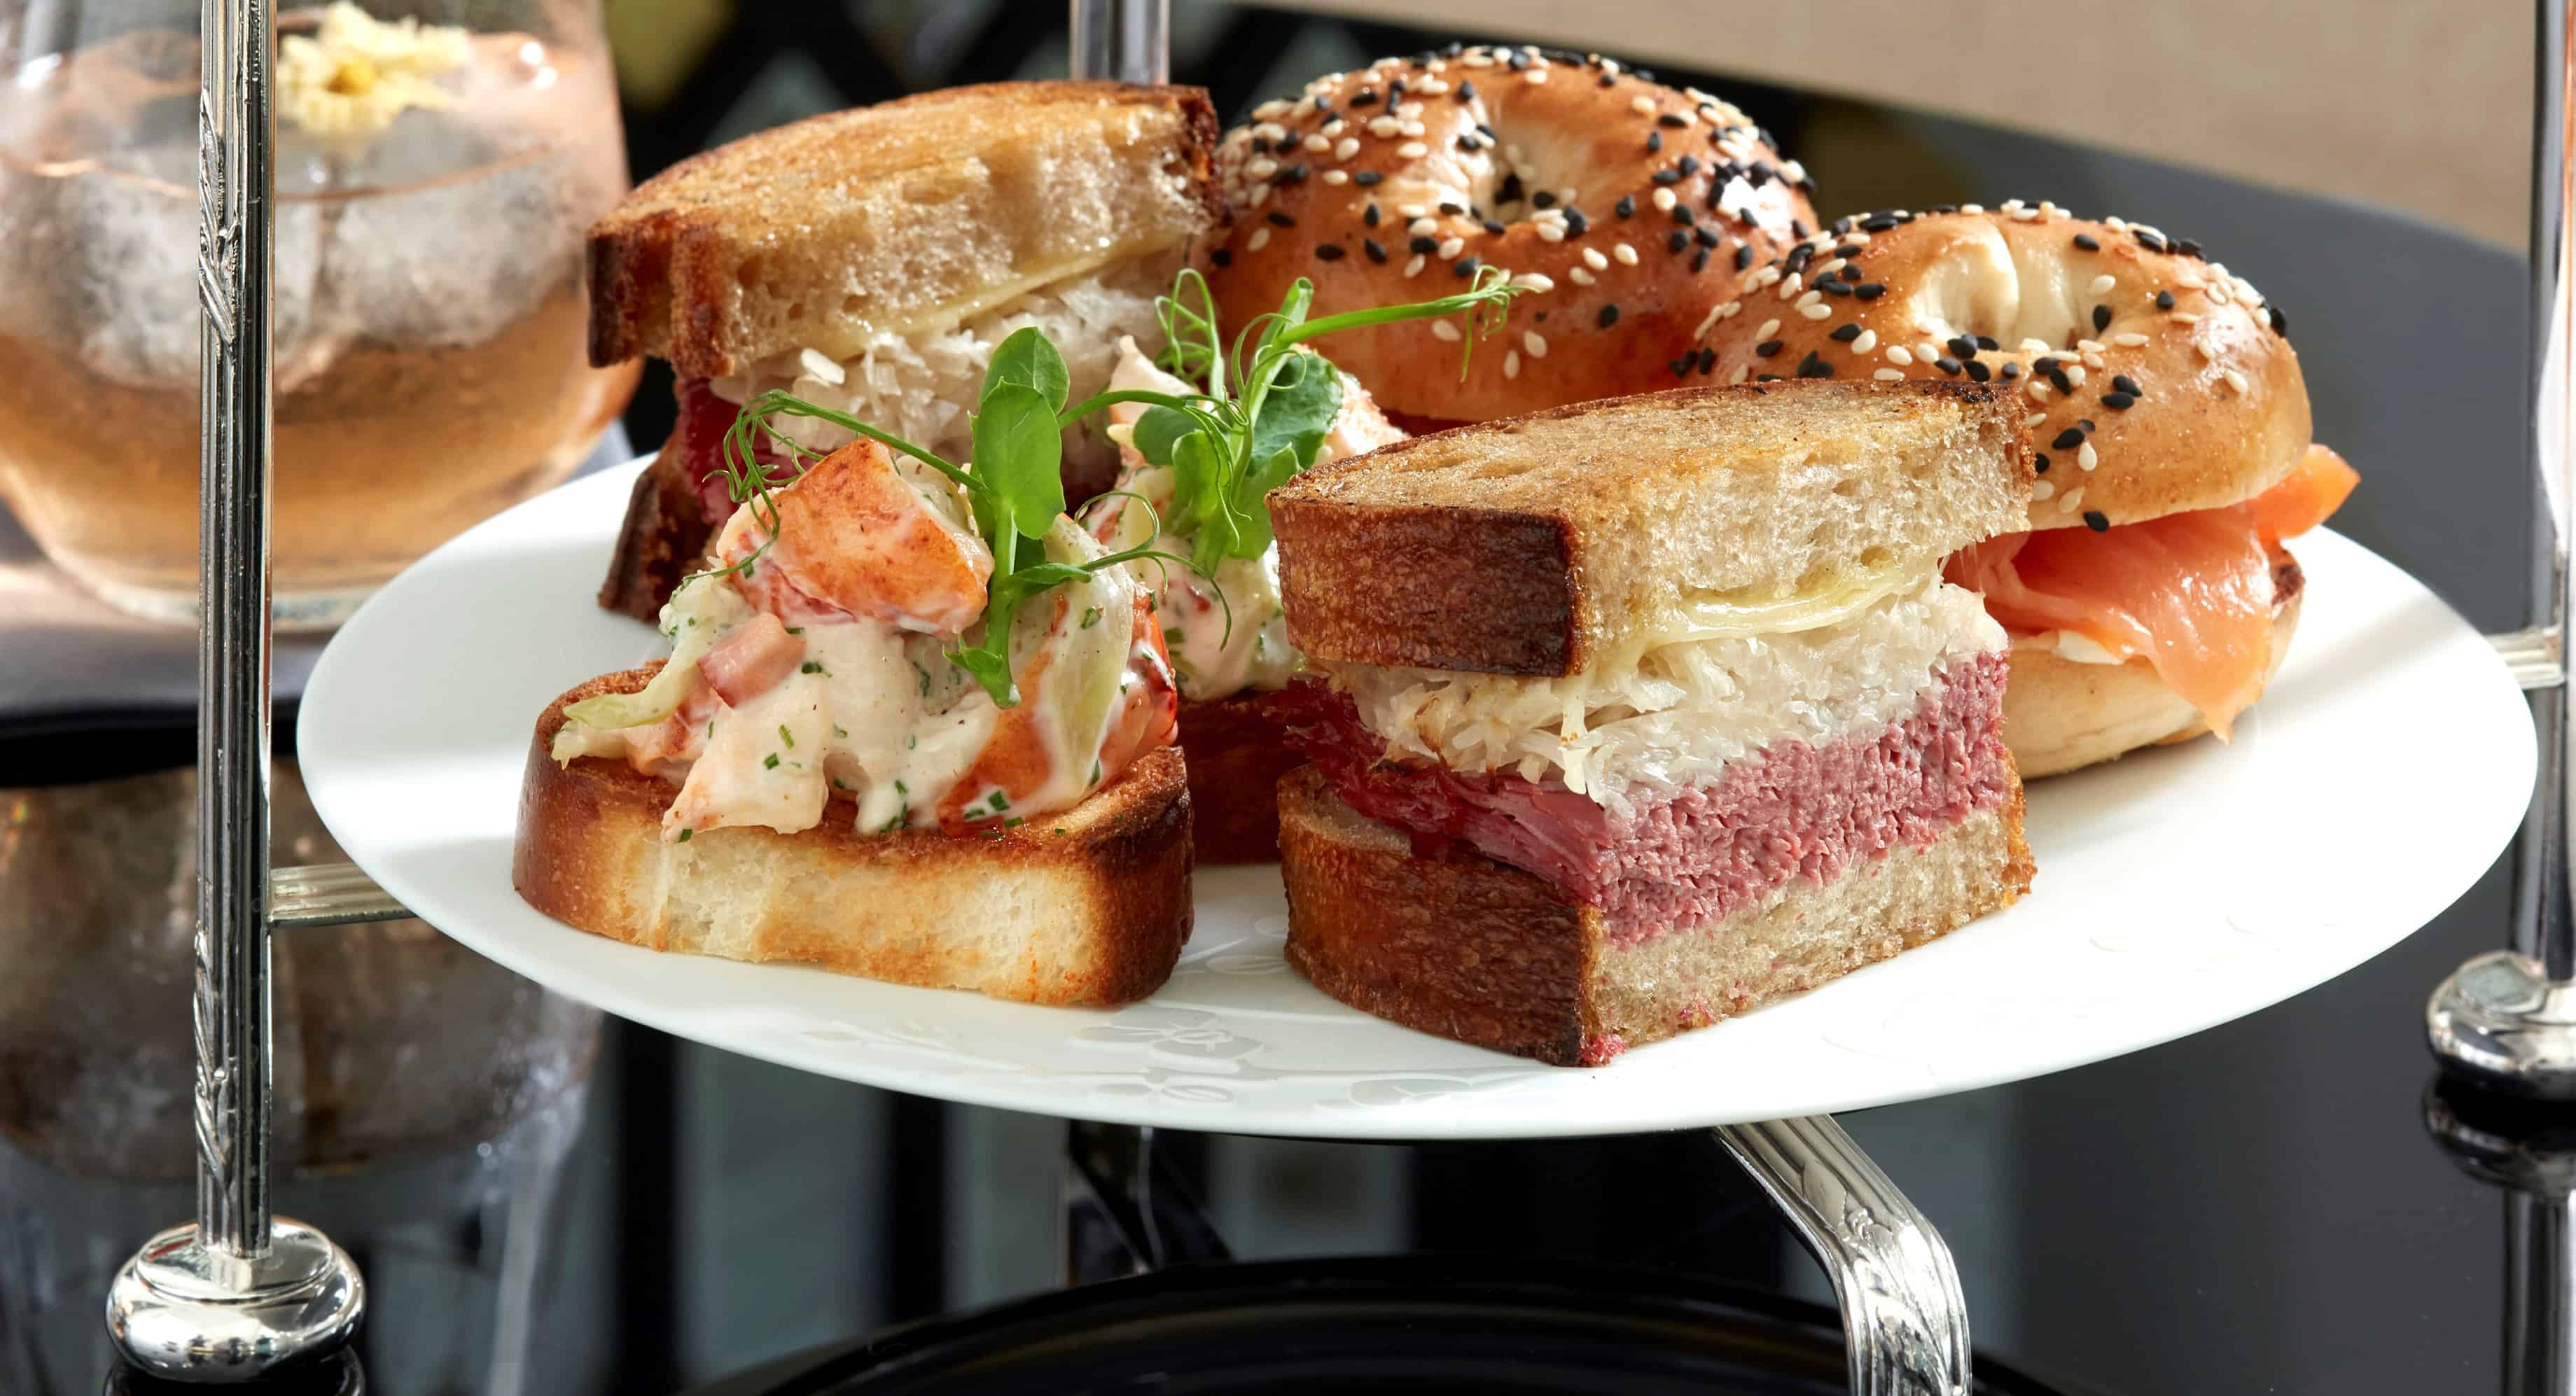 Reuben Sandwiches and Lobster Rolls